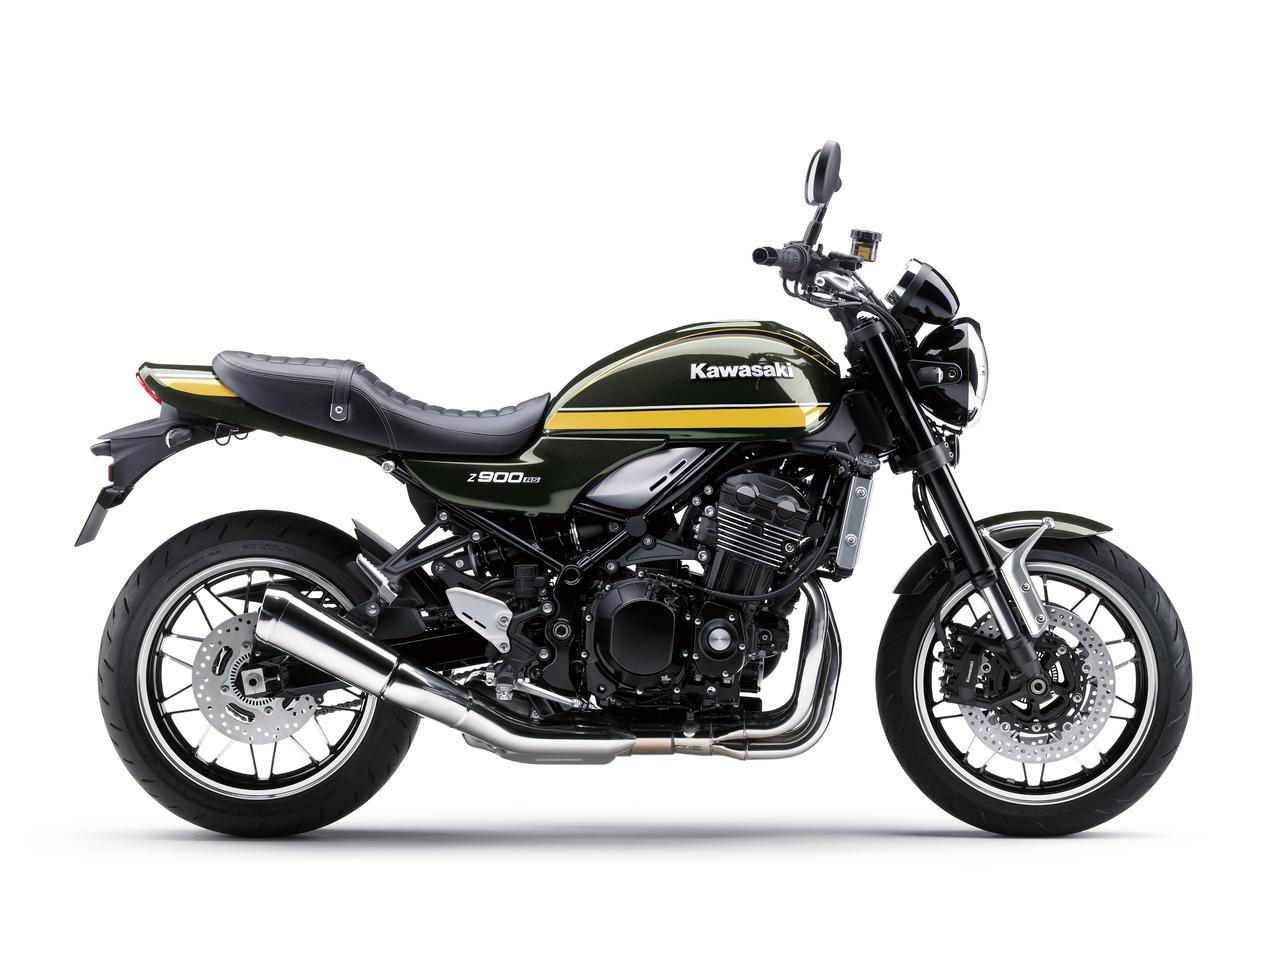 Images : 6番目の画像 - カワサキ「Z900RS」「Z900RS CAFE」2021年モデル - webオートバイ